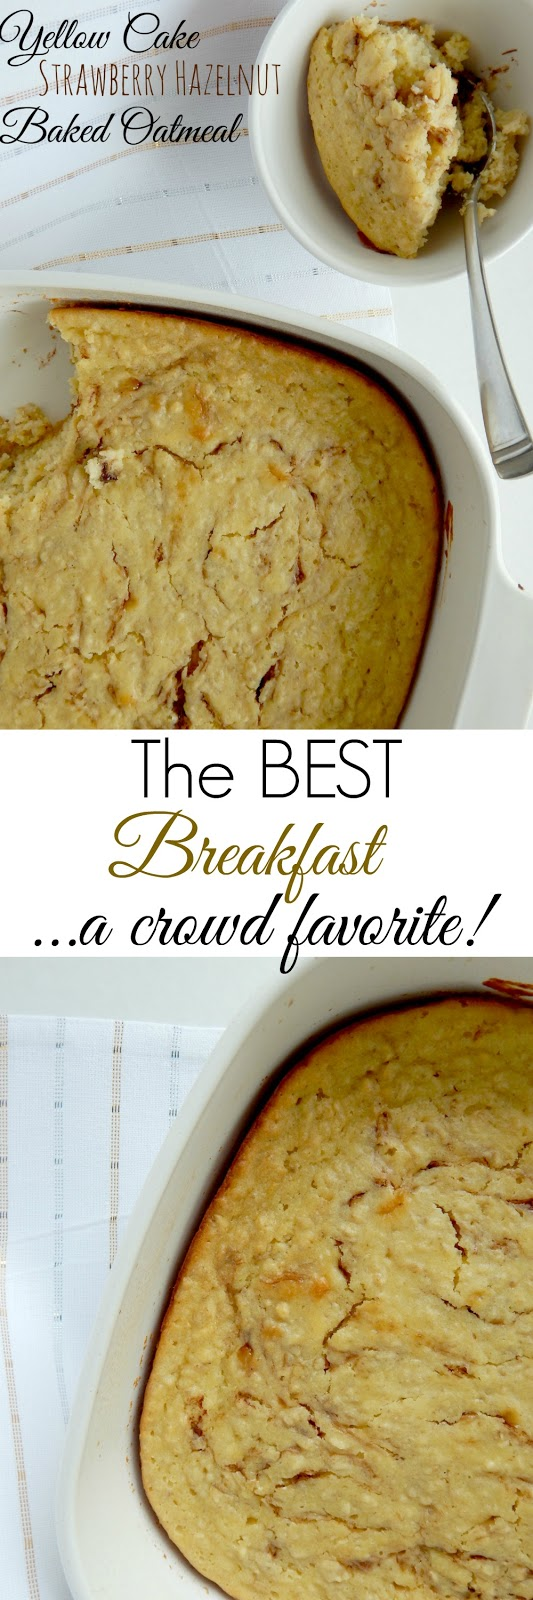 Yellow Cake Strawberry Hazelnut Baked Oatmeal...the BEST breakfast or brunch item on the table! (sweetandsavoryfood.com)